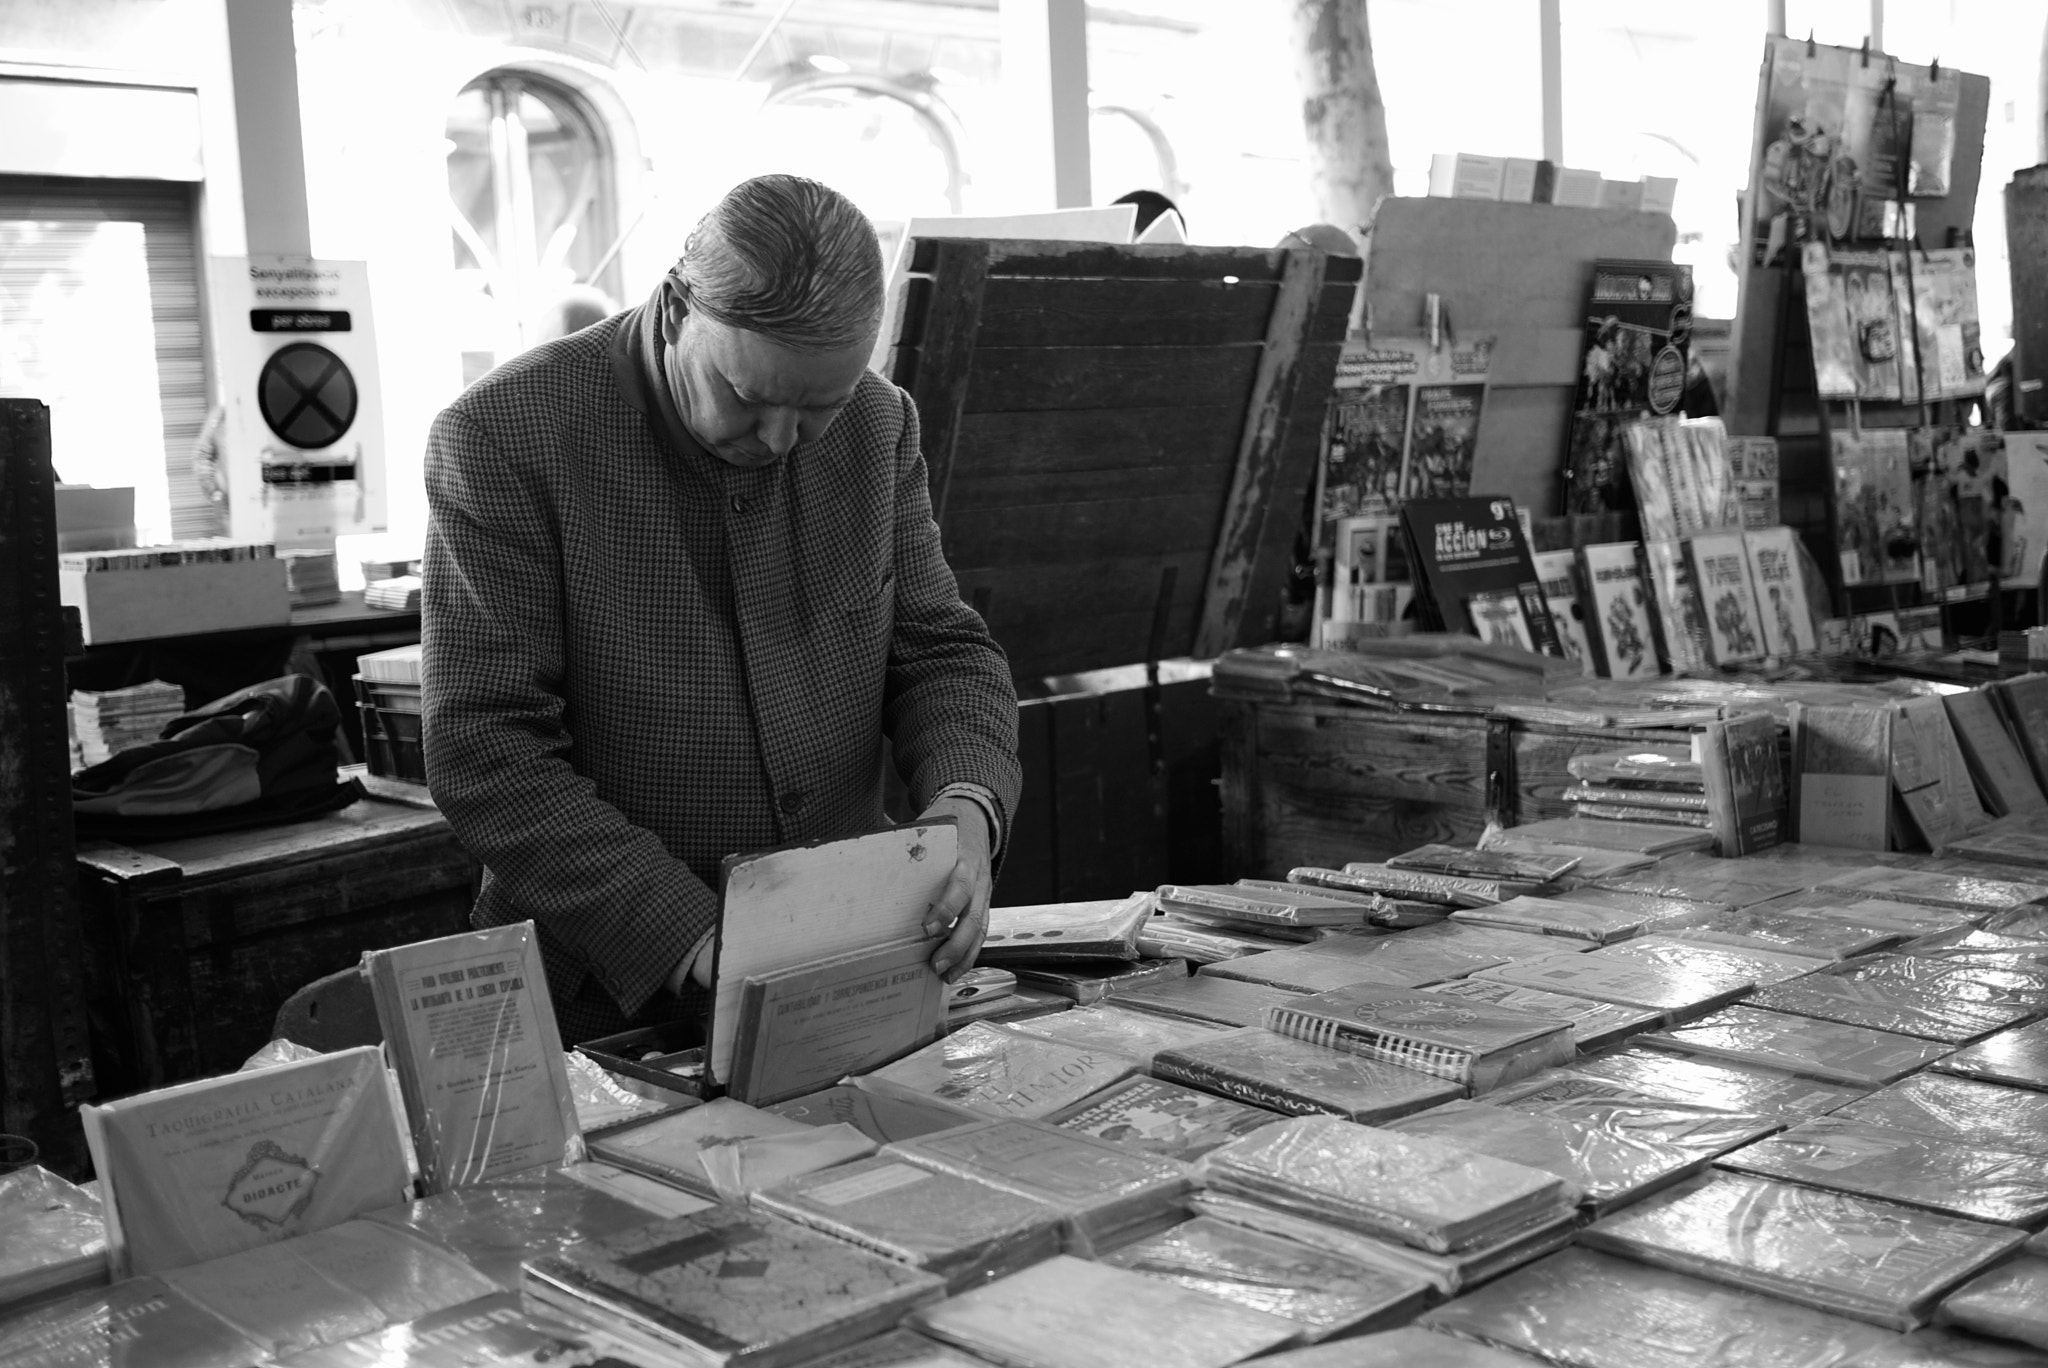 Photograph Bookseller at Sant Antoni by Eduardo Páramo on 500px